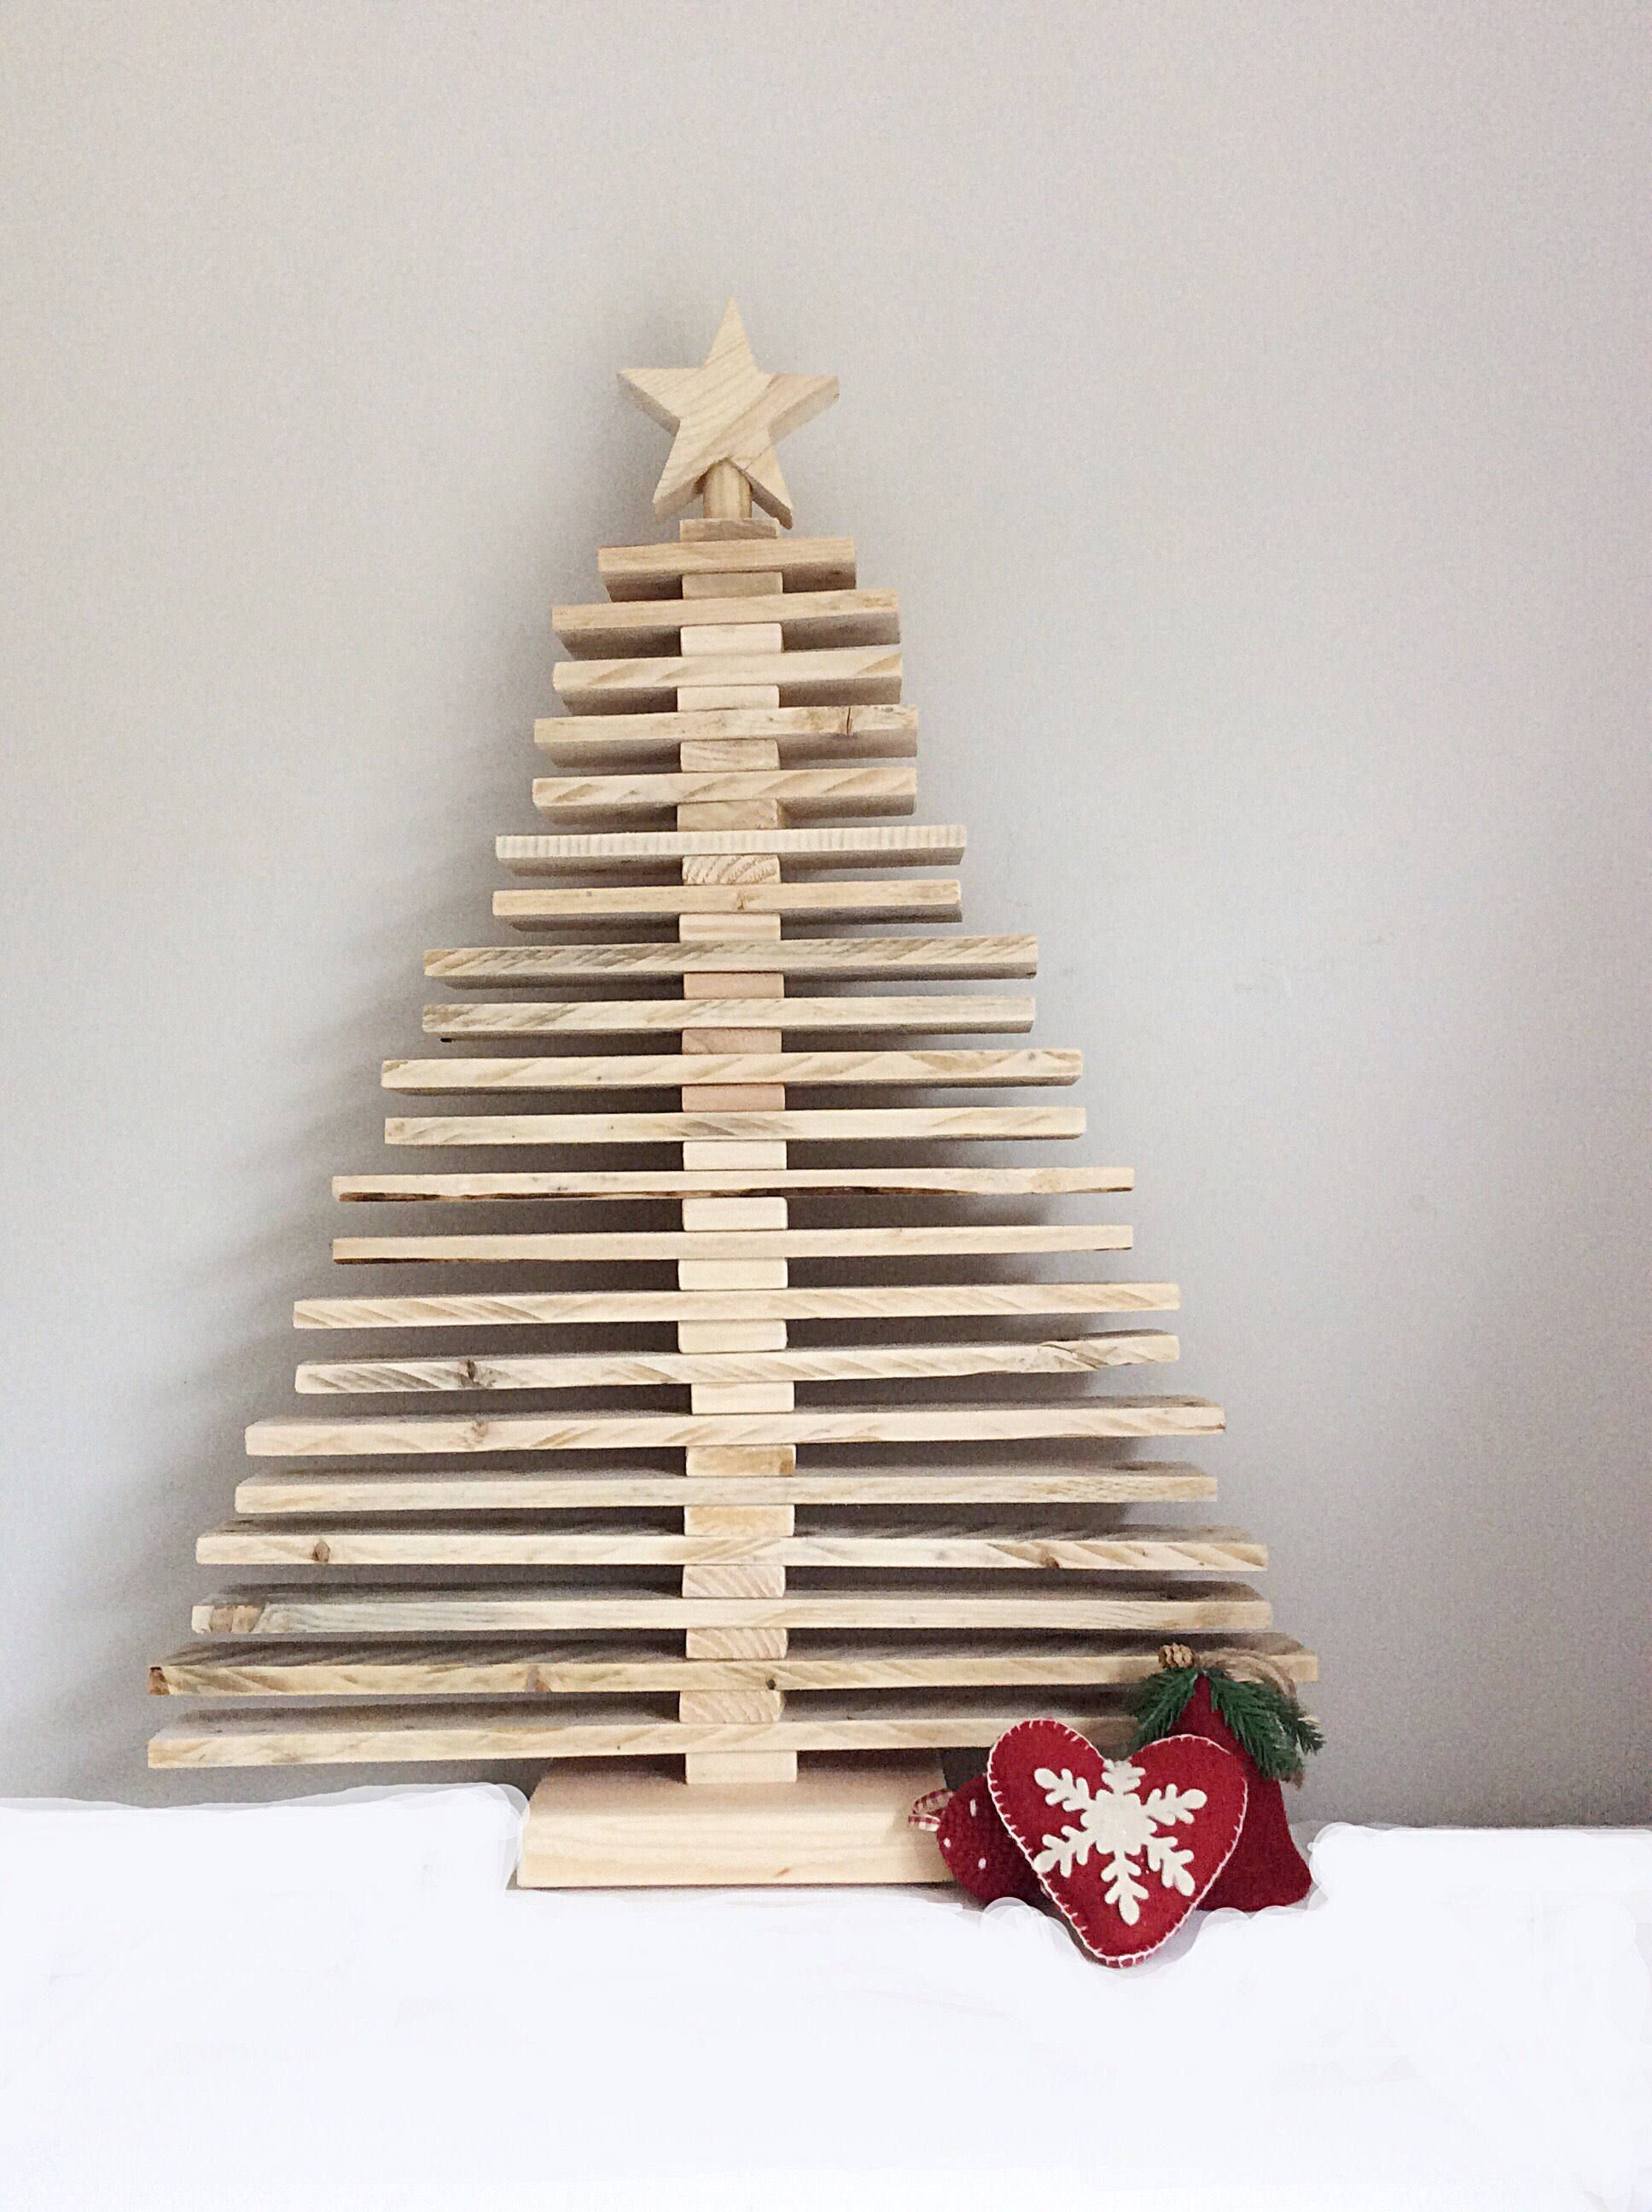 Wooden Christmas Tree Wood Slice Xmas Tree Pallet Wood Christmas Tree Eco Friendly Christm Wood Christmas Tree Wooden Christmas Trees Eco Friendly Christmas